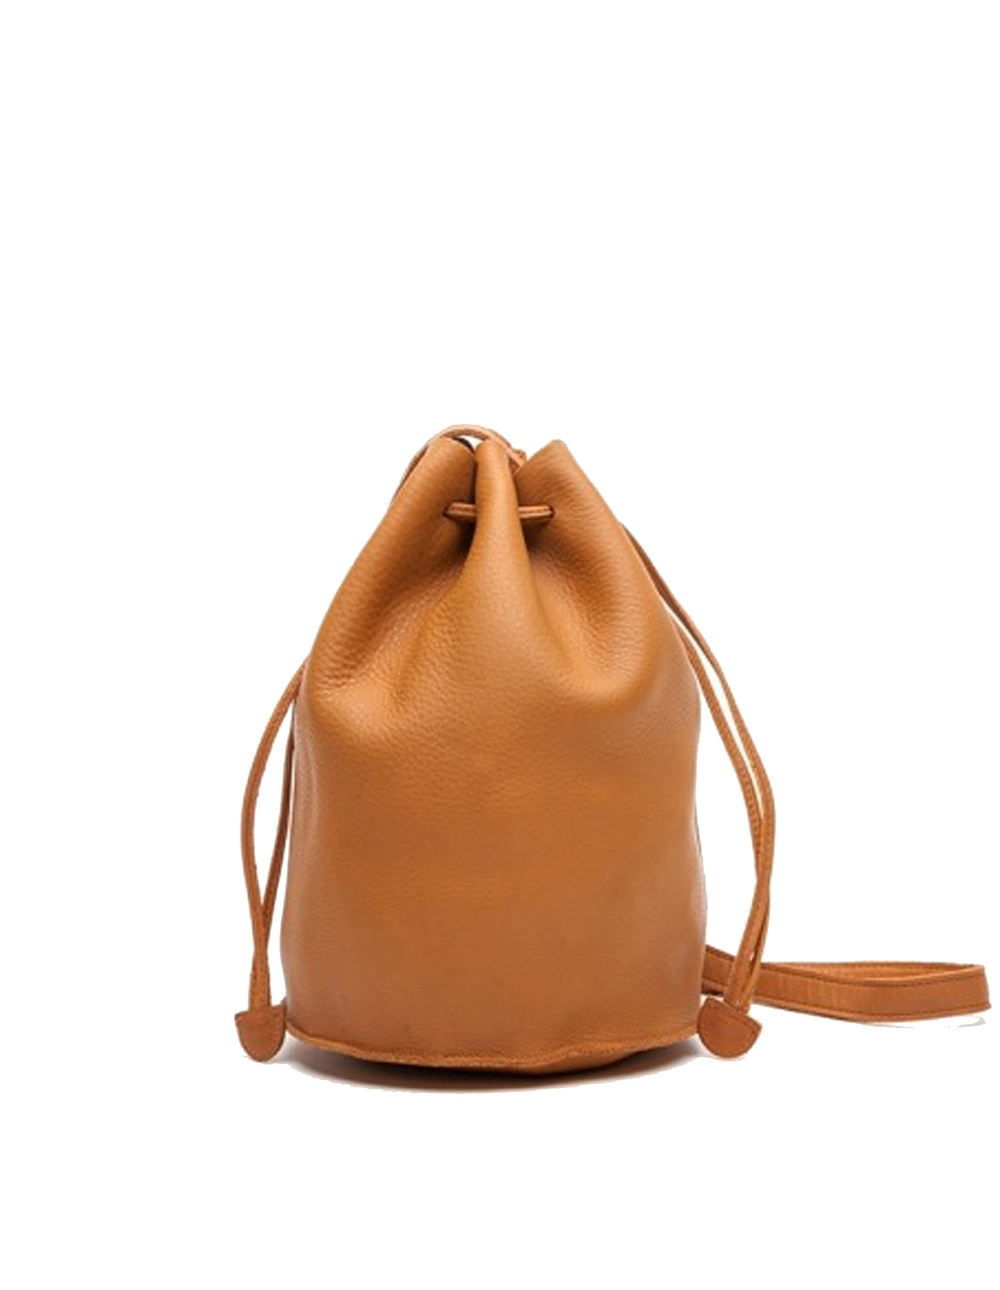 need supply drawstring purse baggu bucket bag 1500.jpg